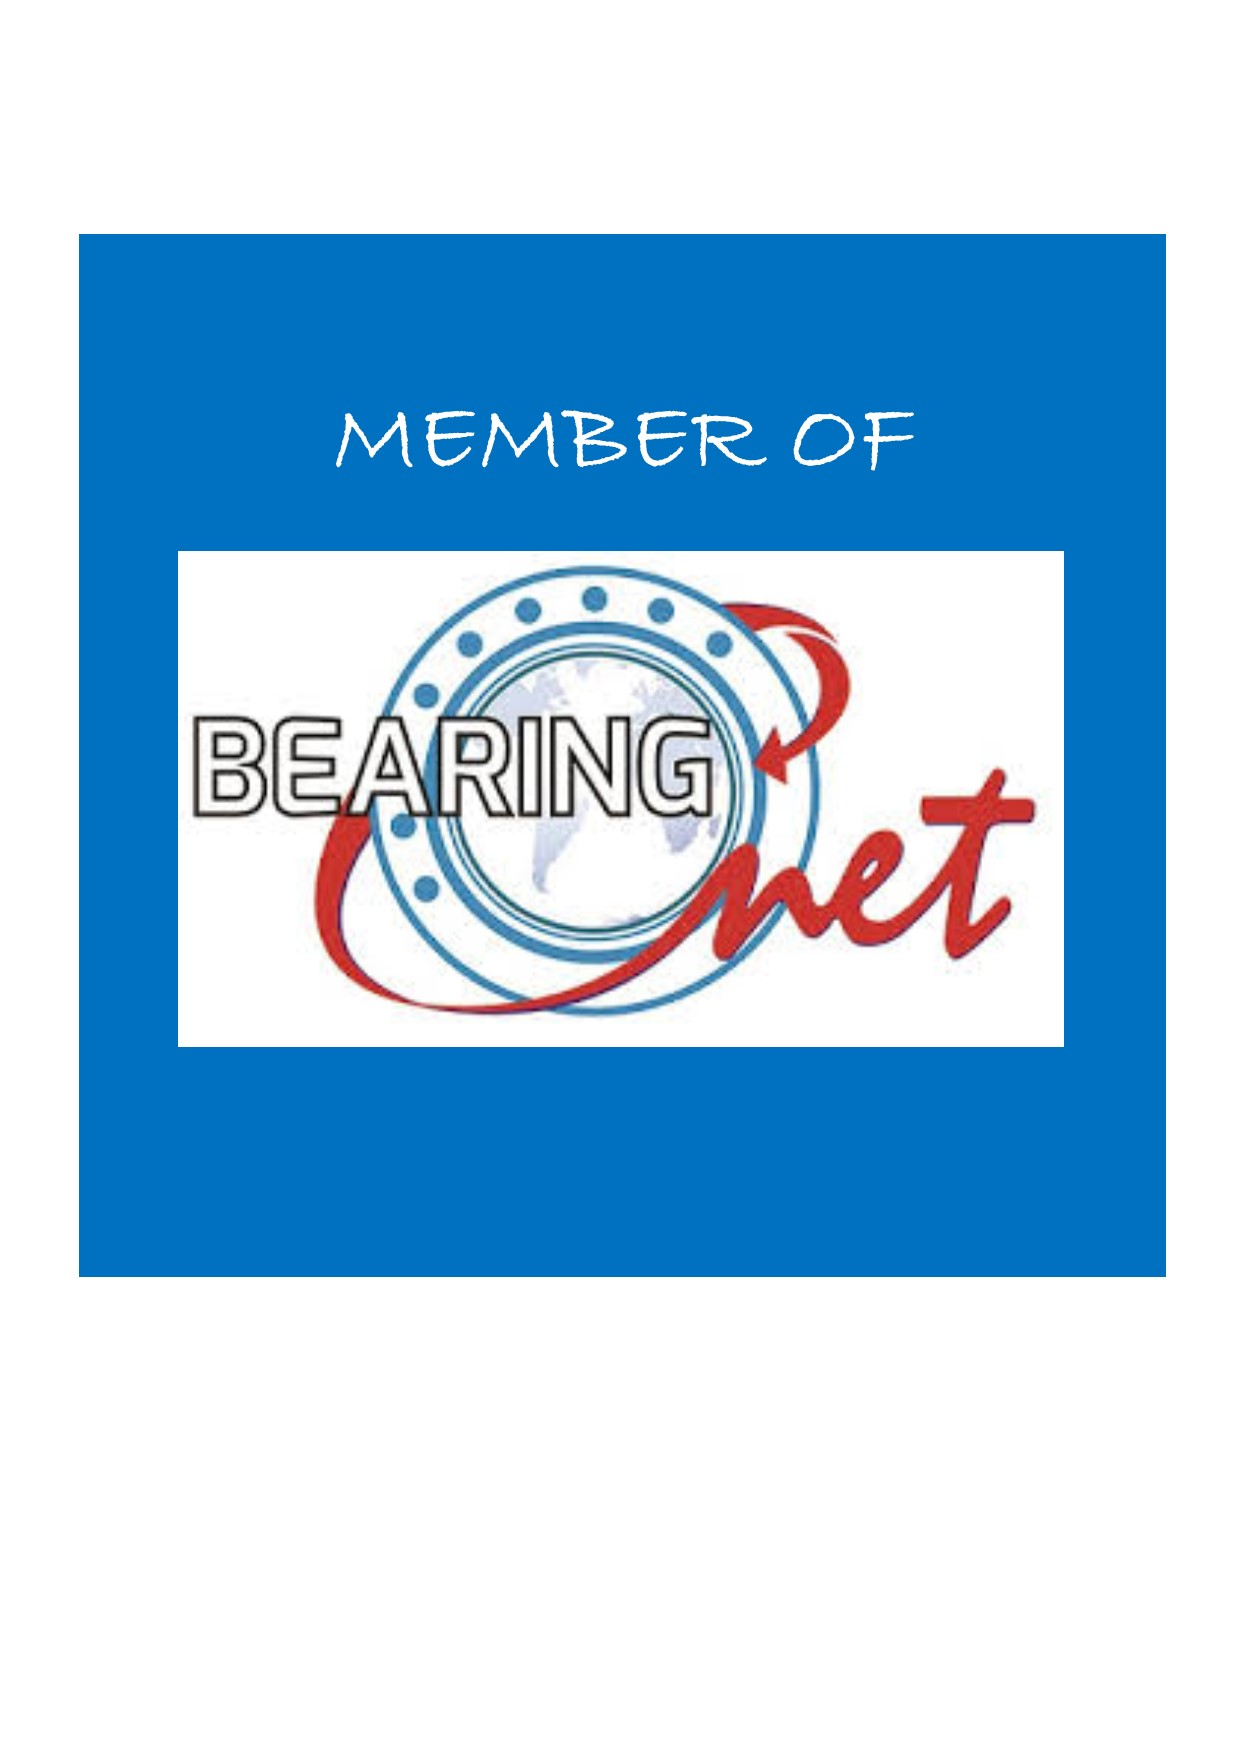 Bearing Net online bearing search site service - Bega Special Tools is member